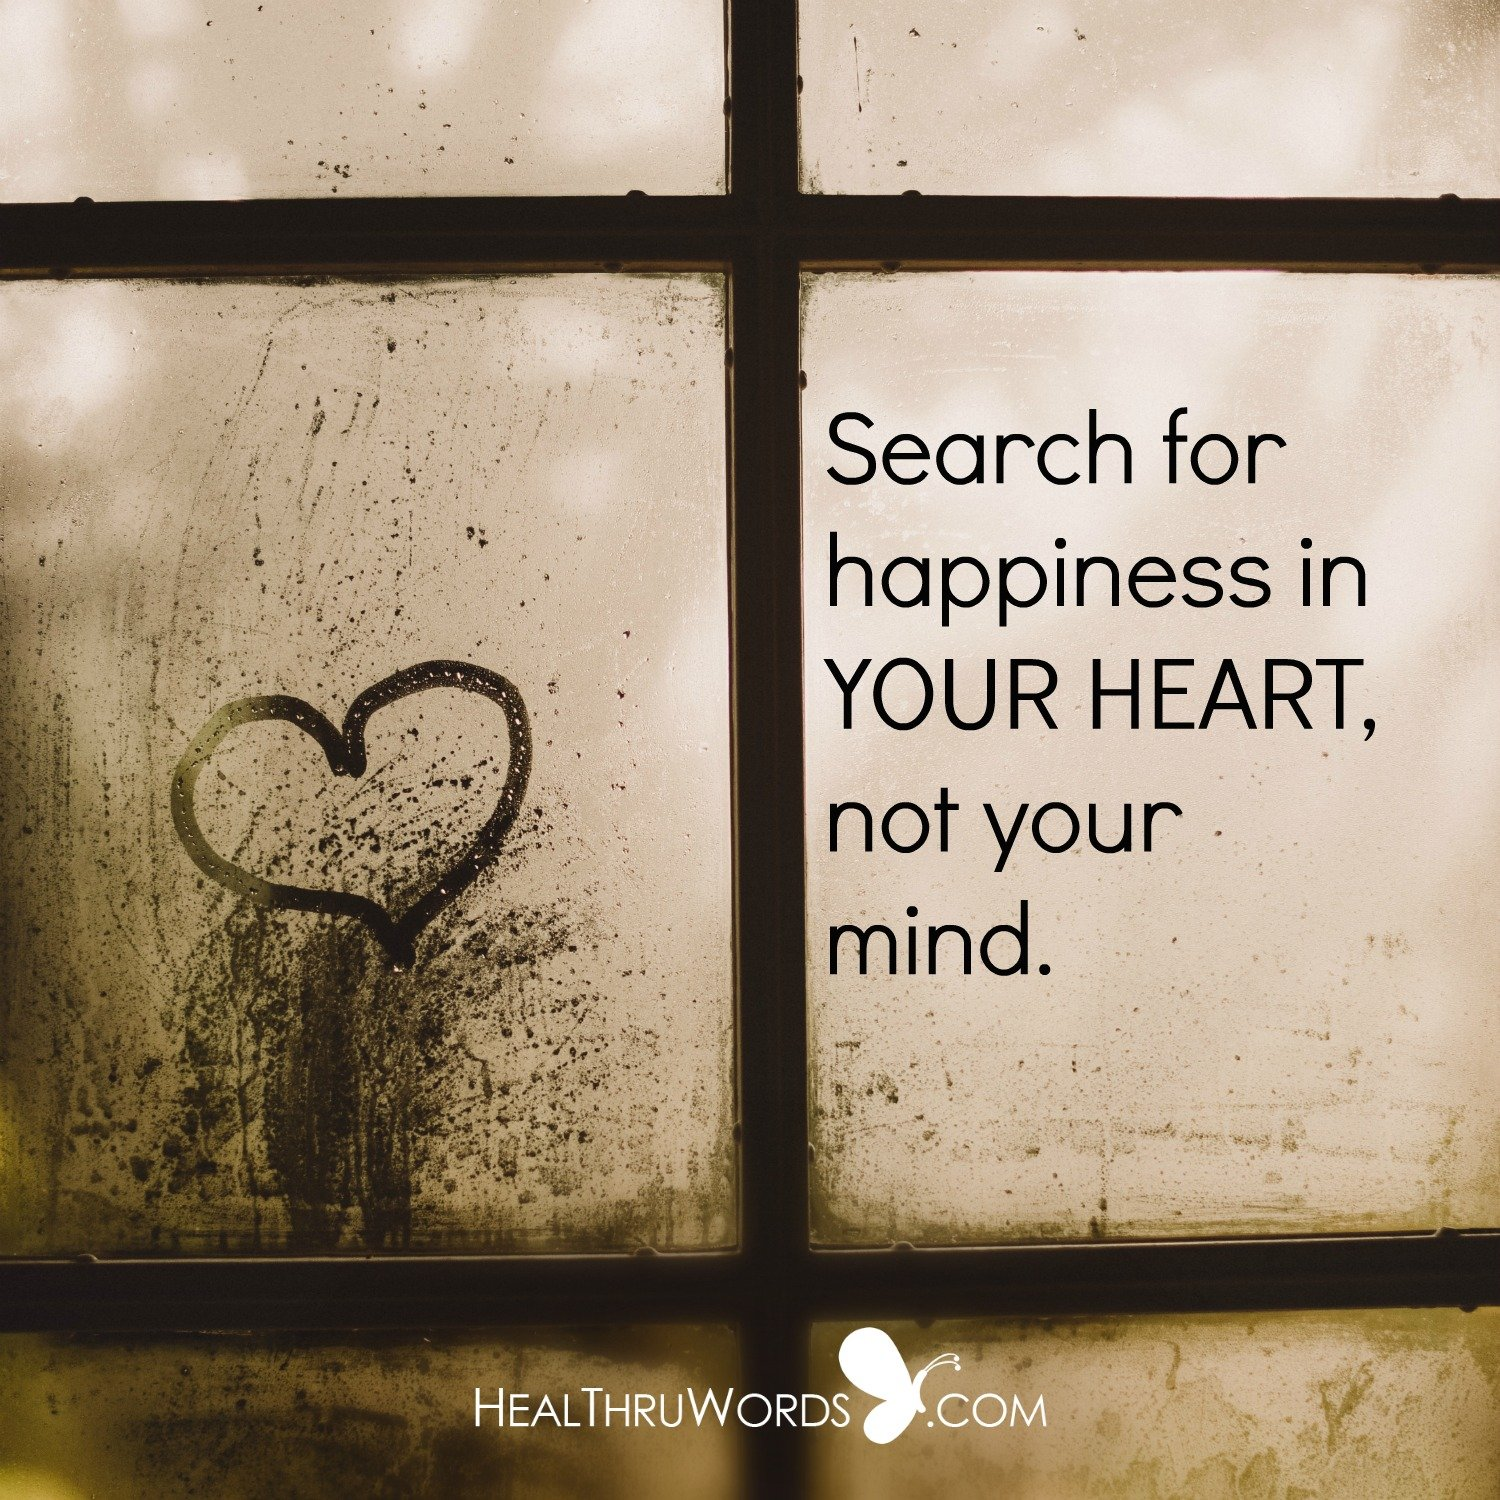 Inspirational Image: Heartful Search